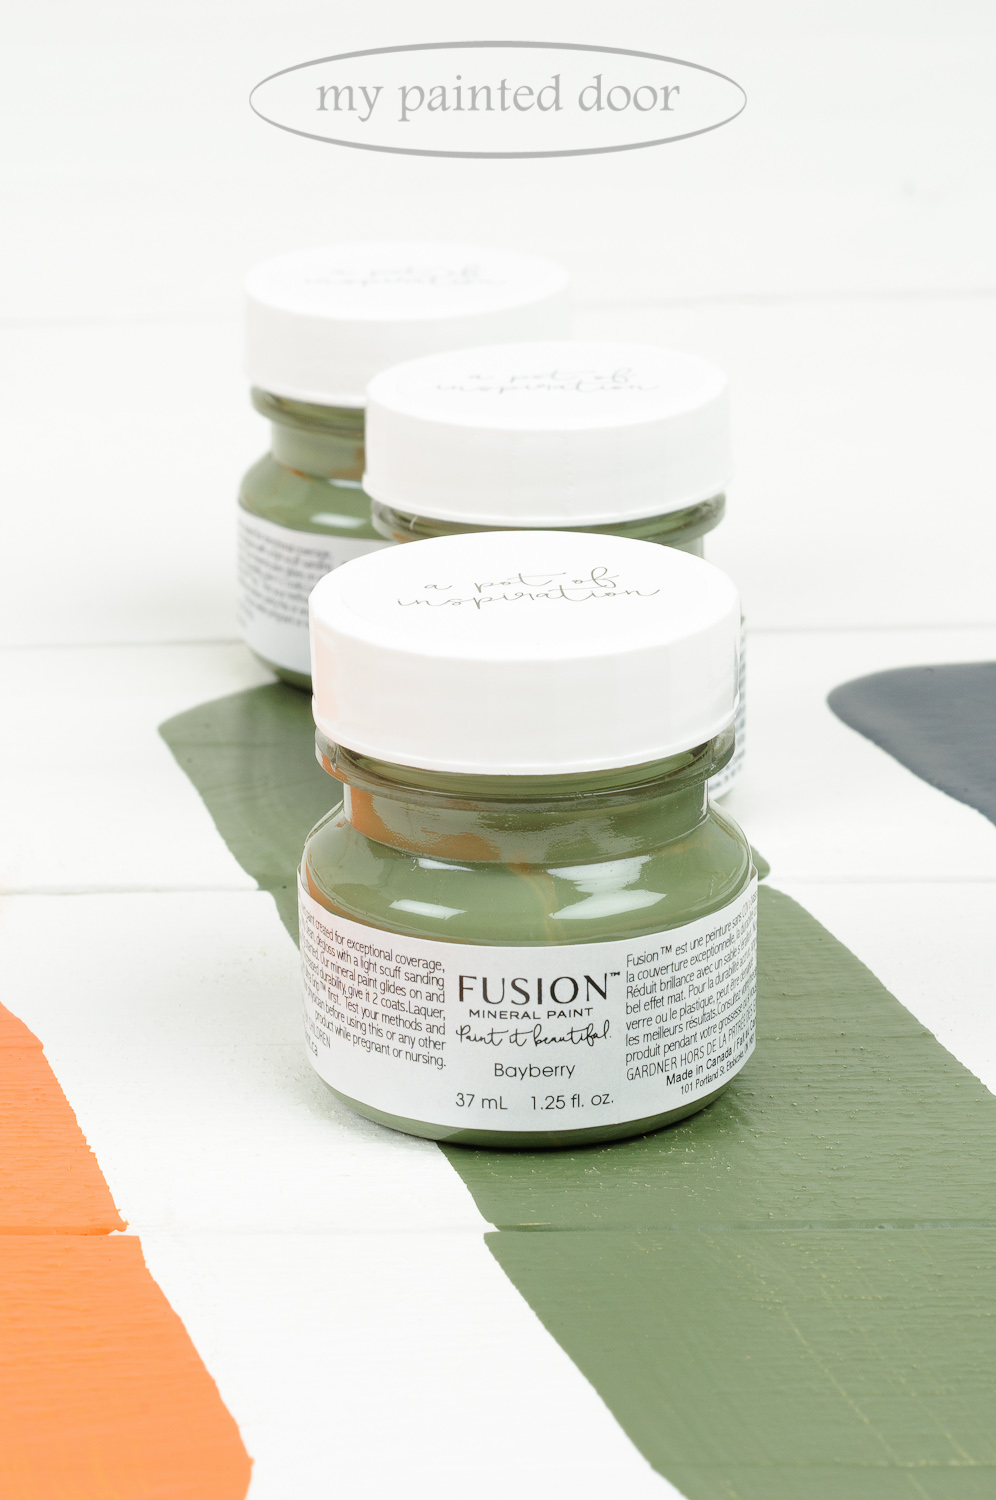 Ready, Set, Go! The new Fusion Mineral Paint colours in action.